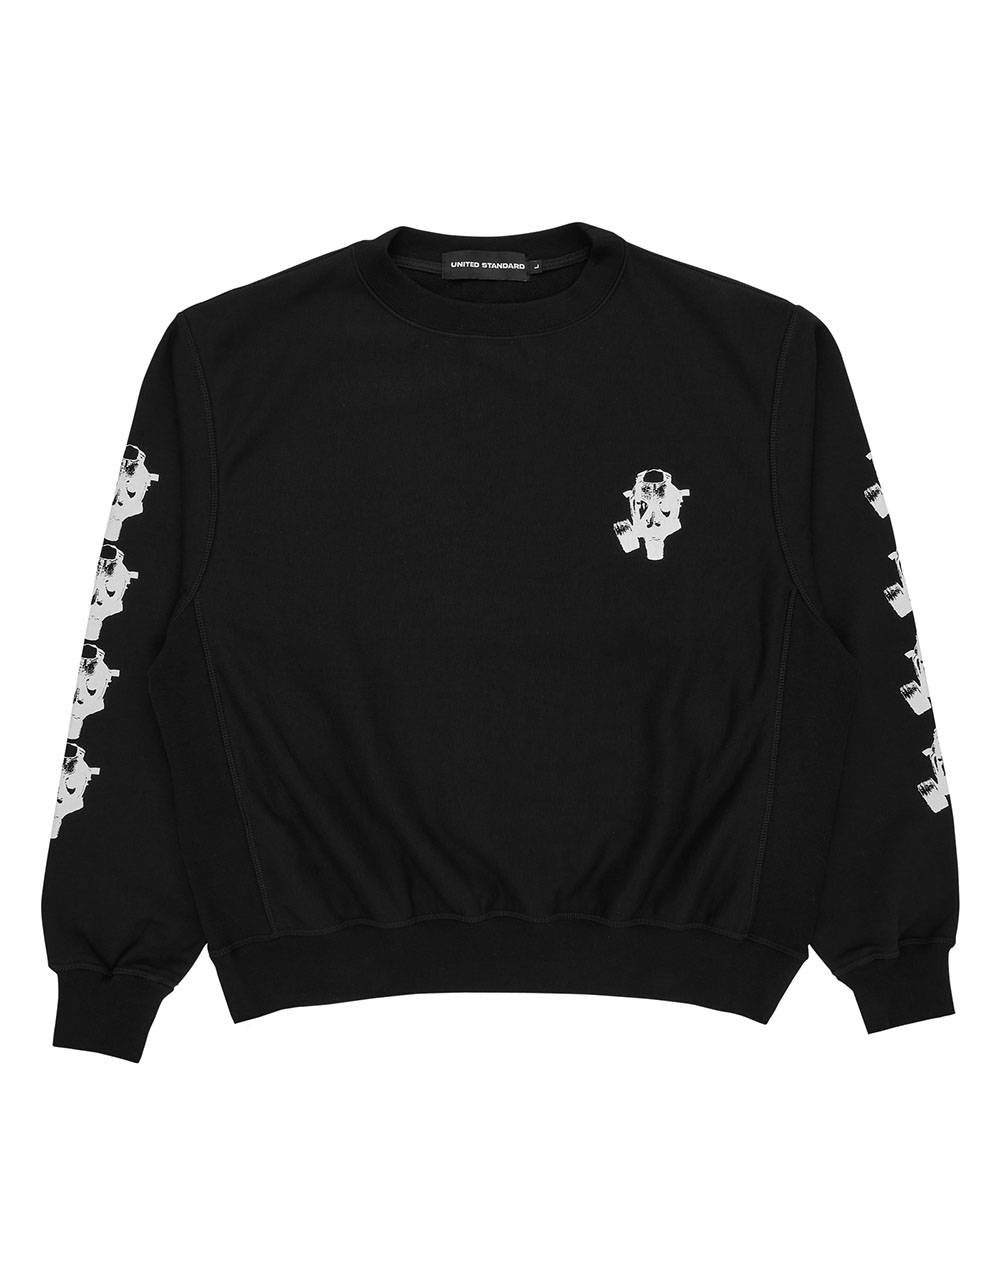 United Standard Mask crewneck sweater - black United Standard Sweater 138,52 €